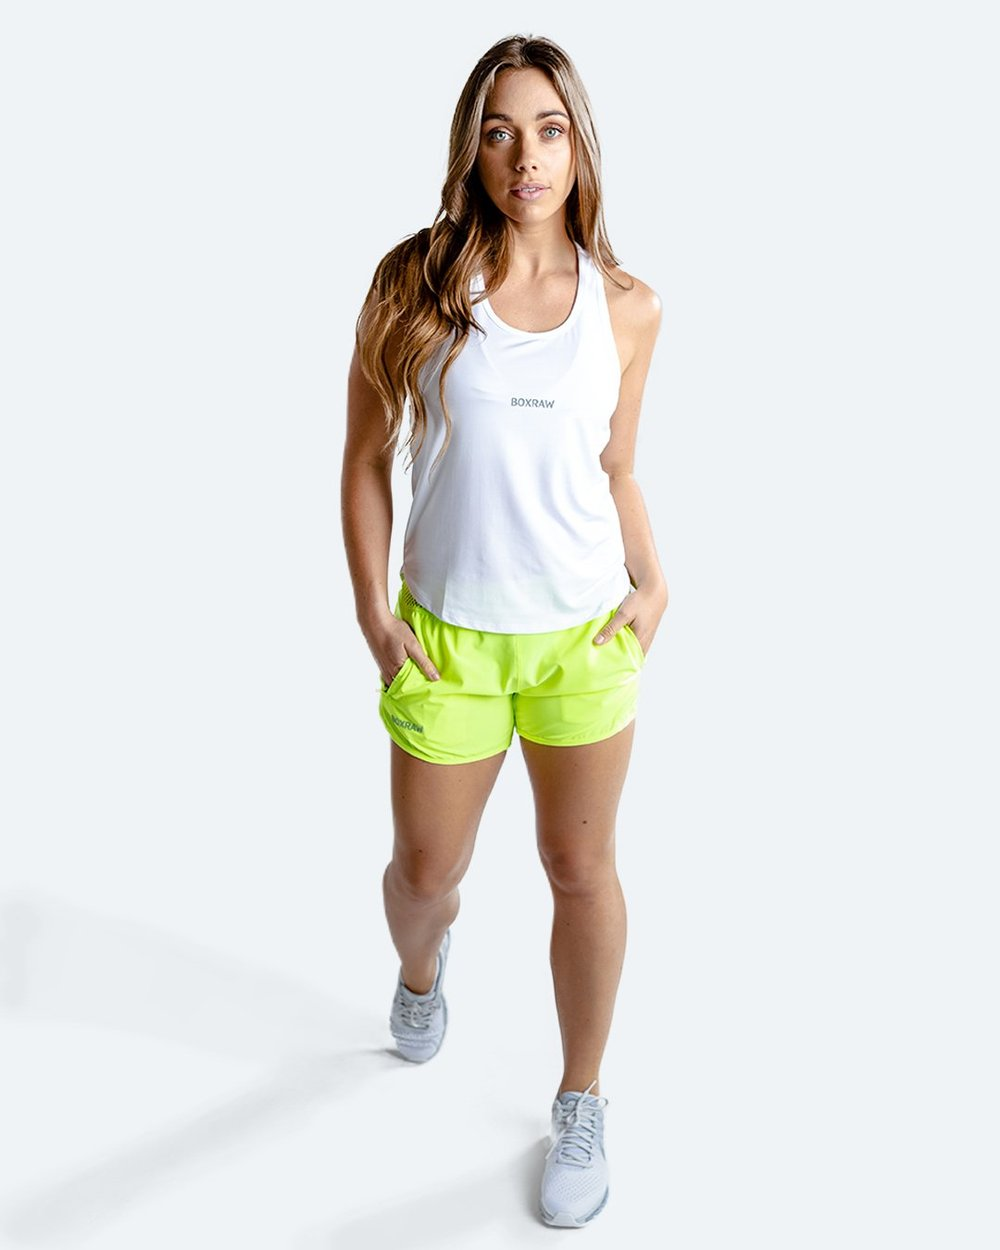 WOMEN'S LAILA SHORTS - YELLOW - Pandemic Fight Gear Inc.